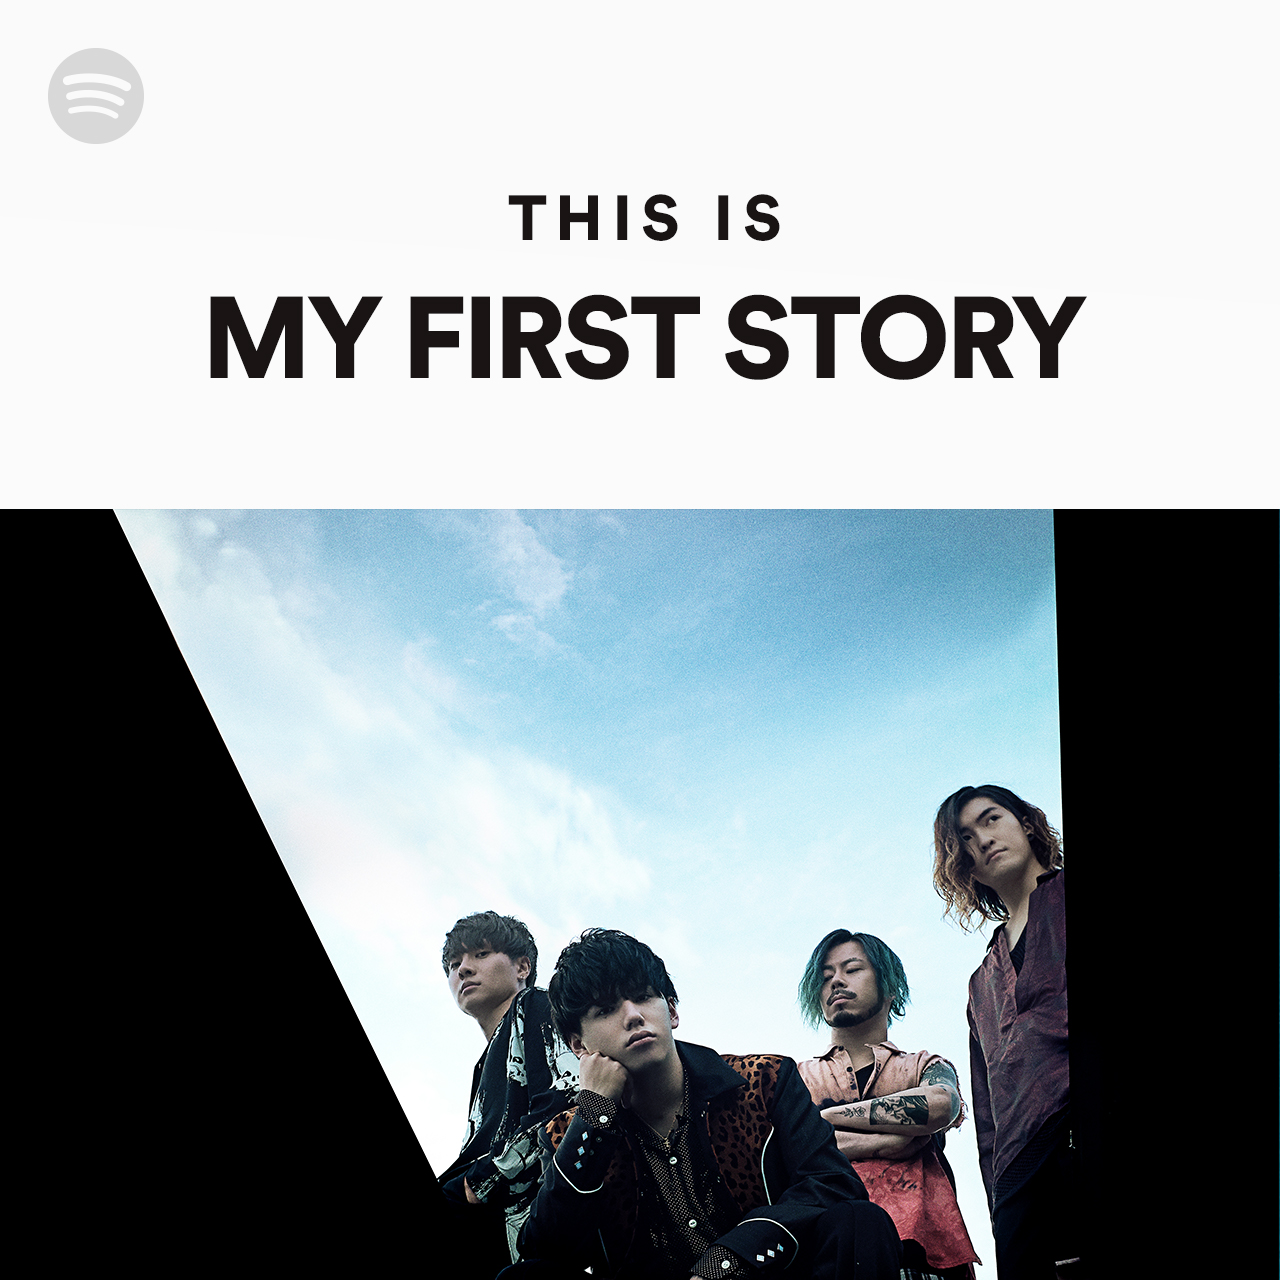 This Is MY FIRST STORYのサムネイル